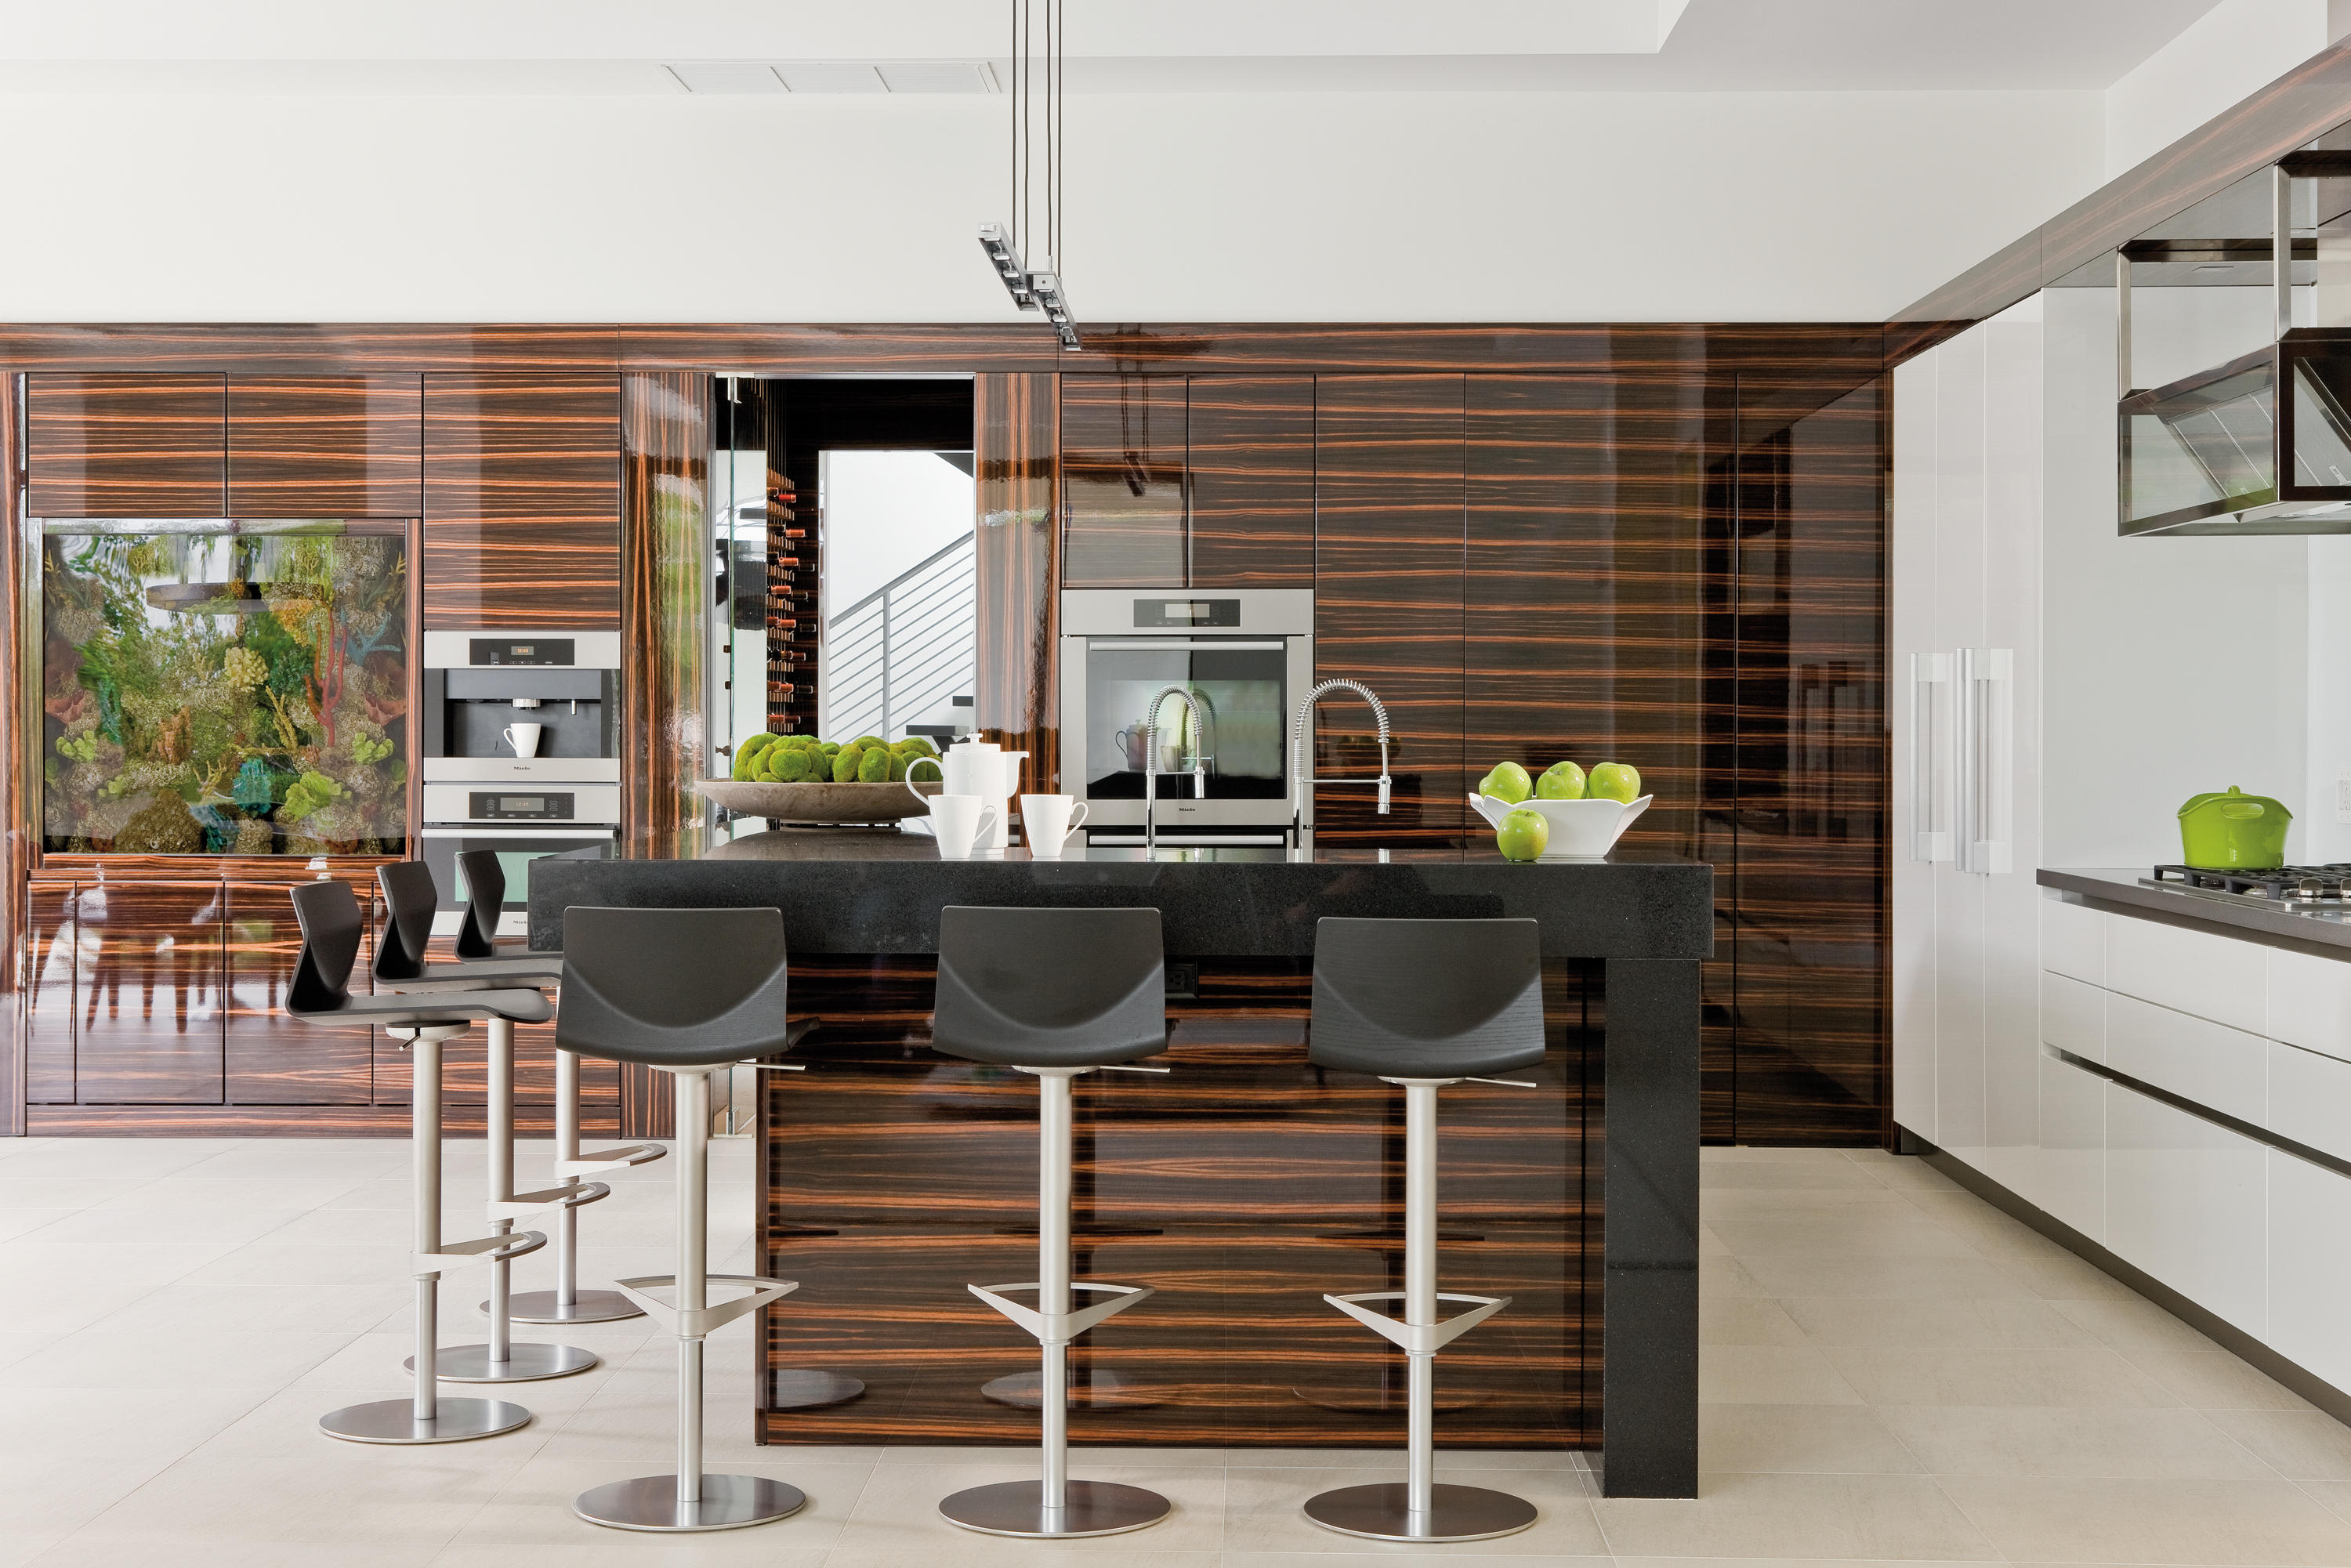 Haus miami bespoke kitchens from eggersmann architonic for Haus kitchens